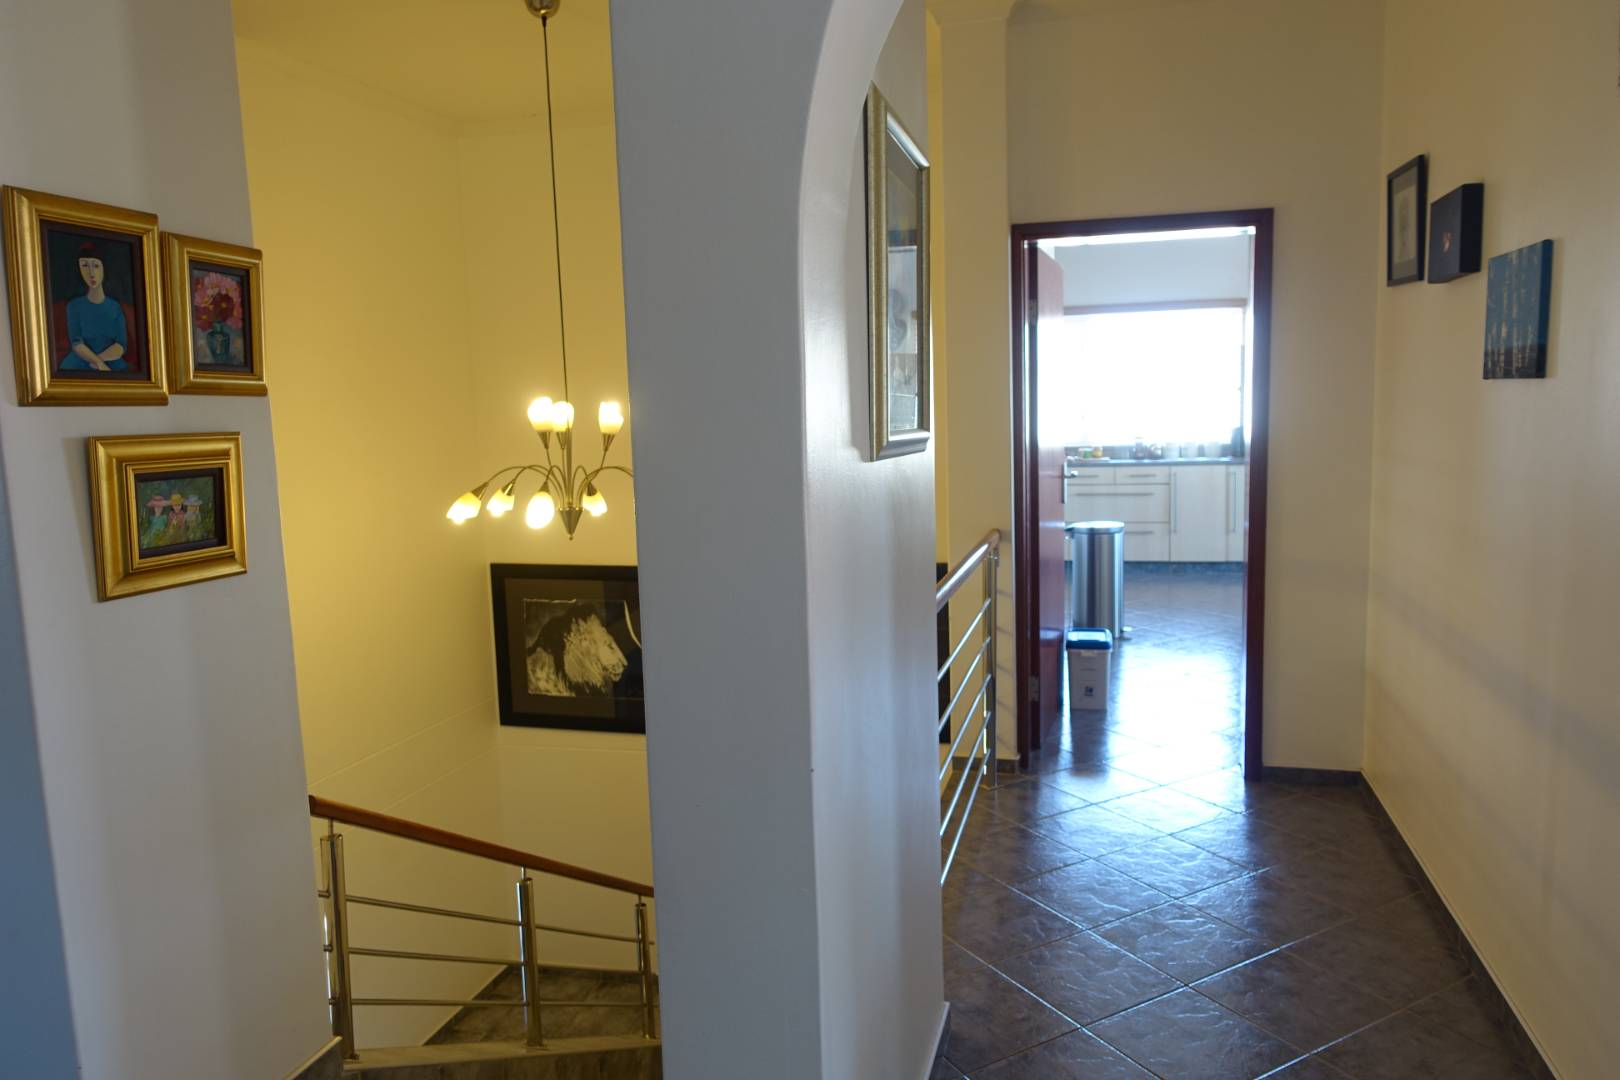 Staircase leading to the apartment on first floor